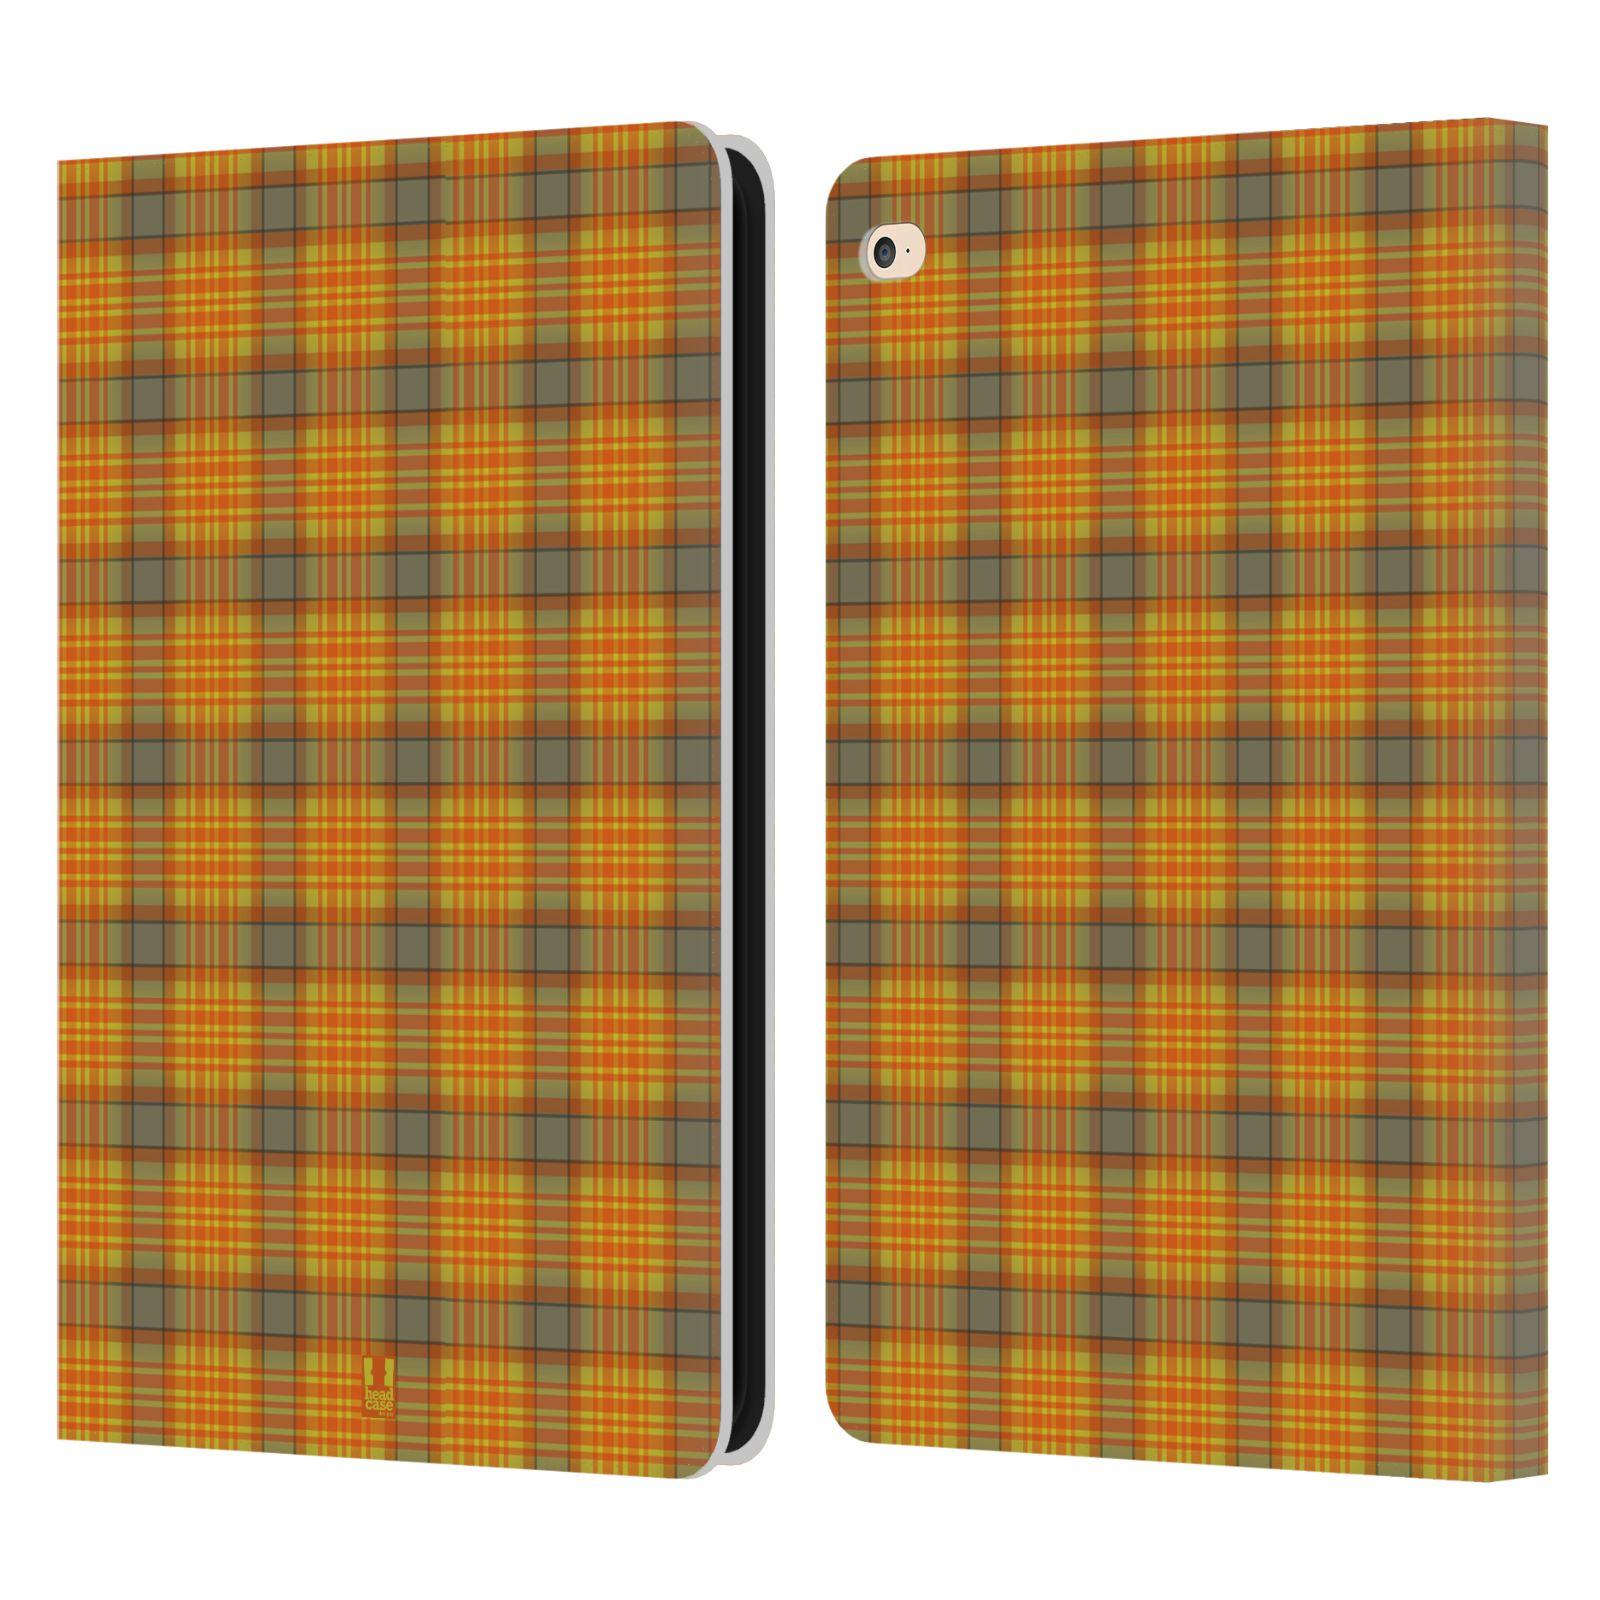 Checkered Cover Cookbook ~ Head case designs plaid pattern leather book wallet